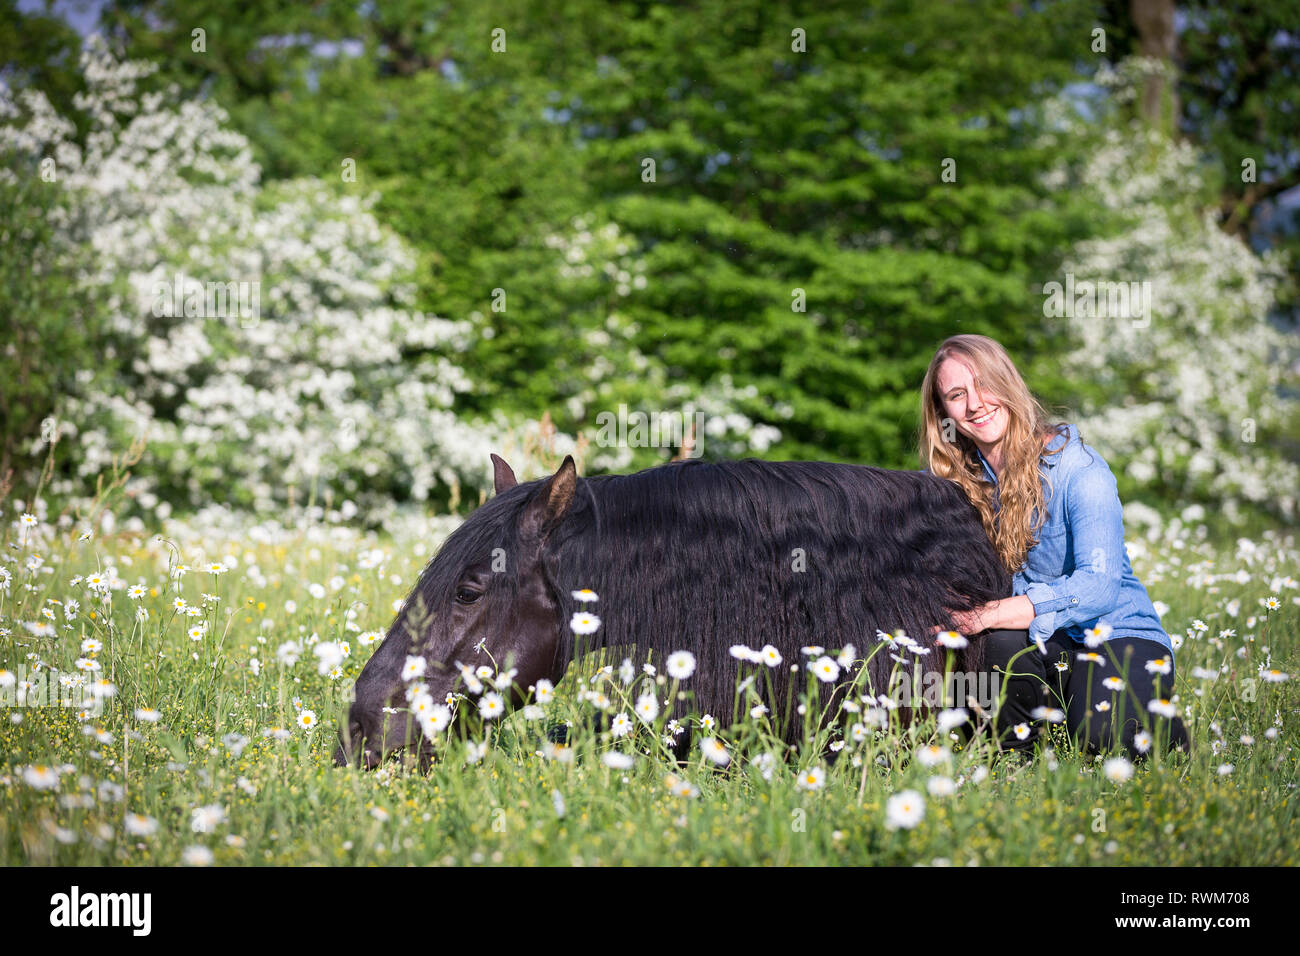 Lusitano. Juvenile black stallion lying on a pasture in spring, with a smiling young woman. Switzerland - Stock Image